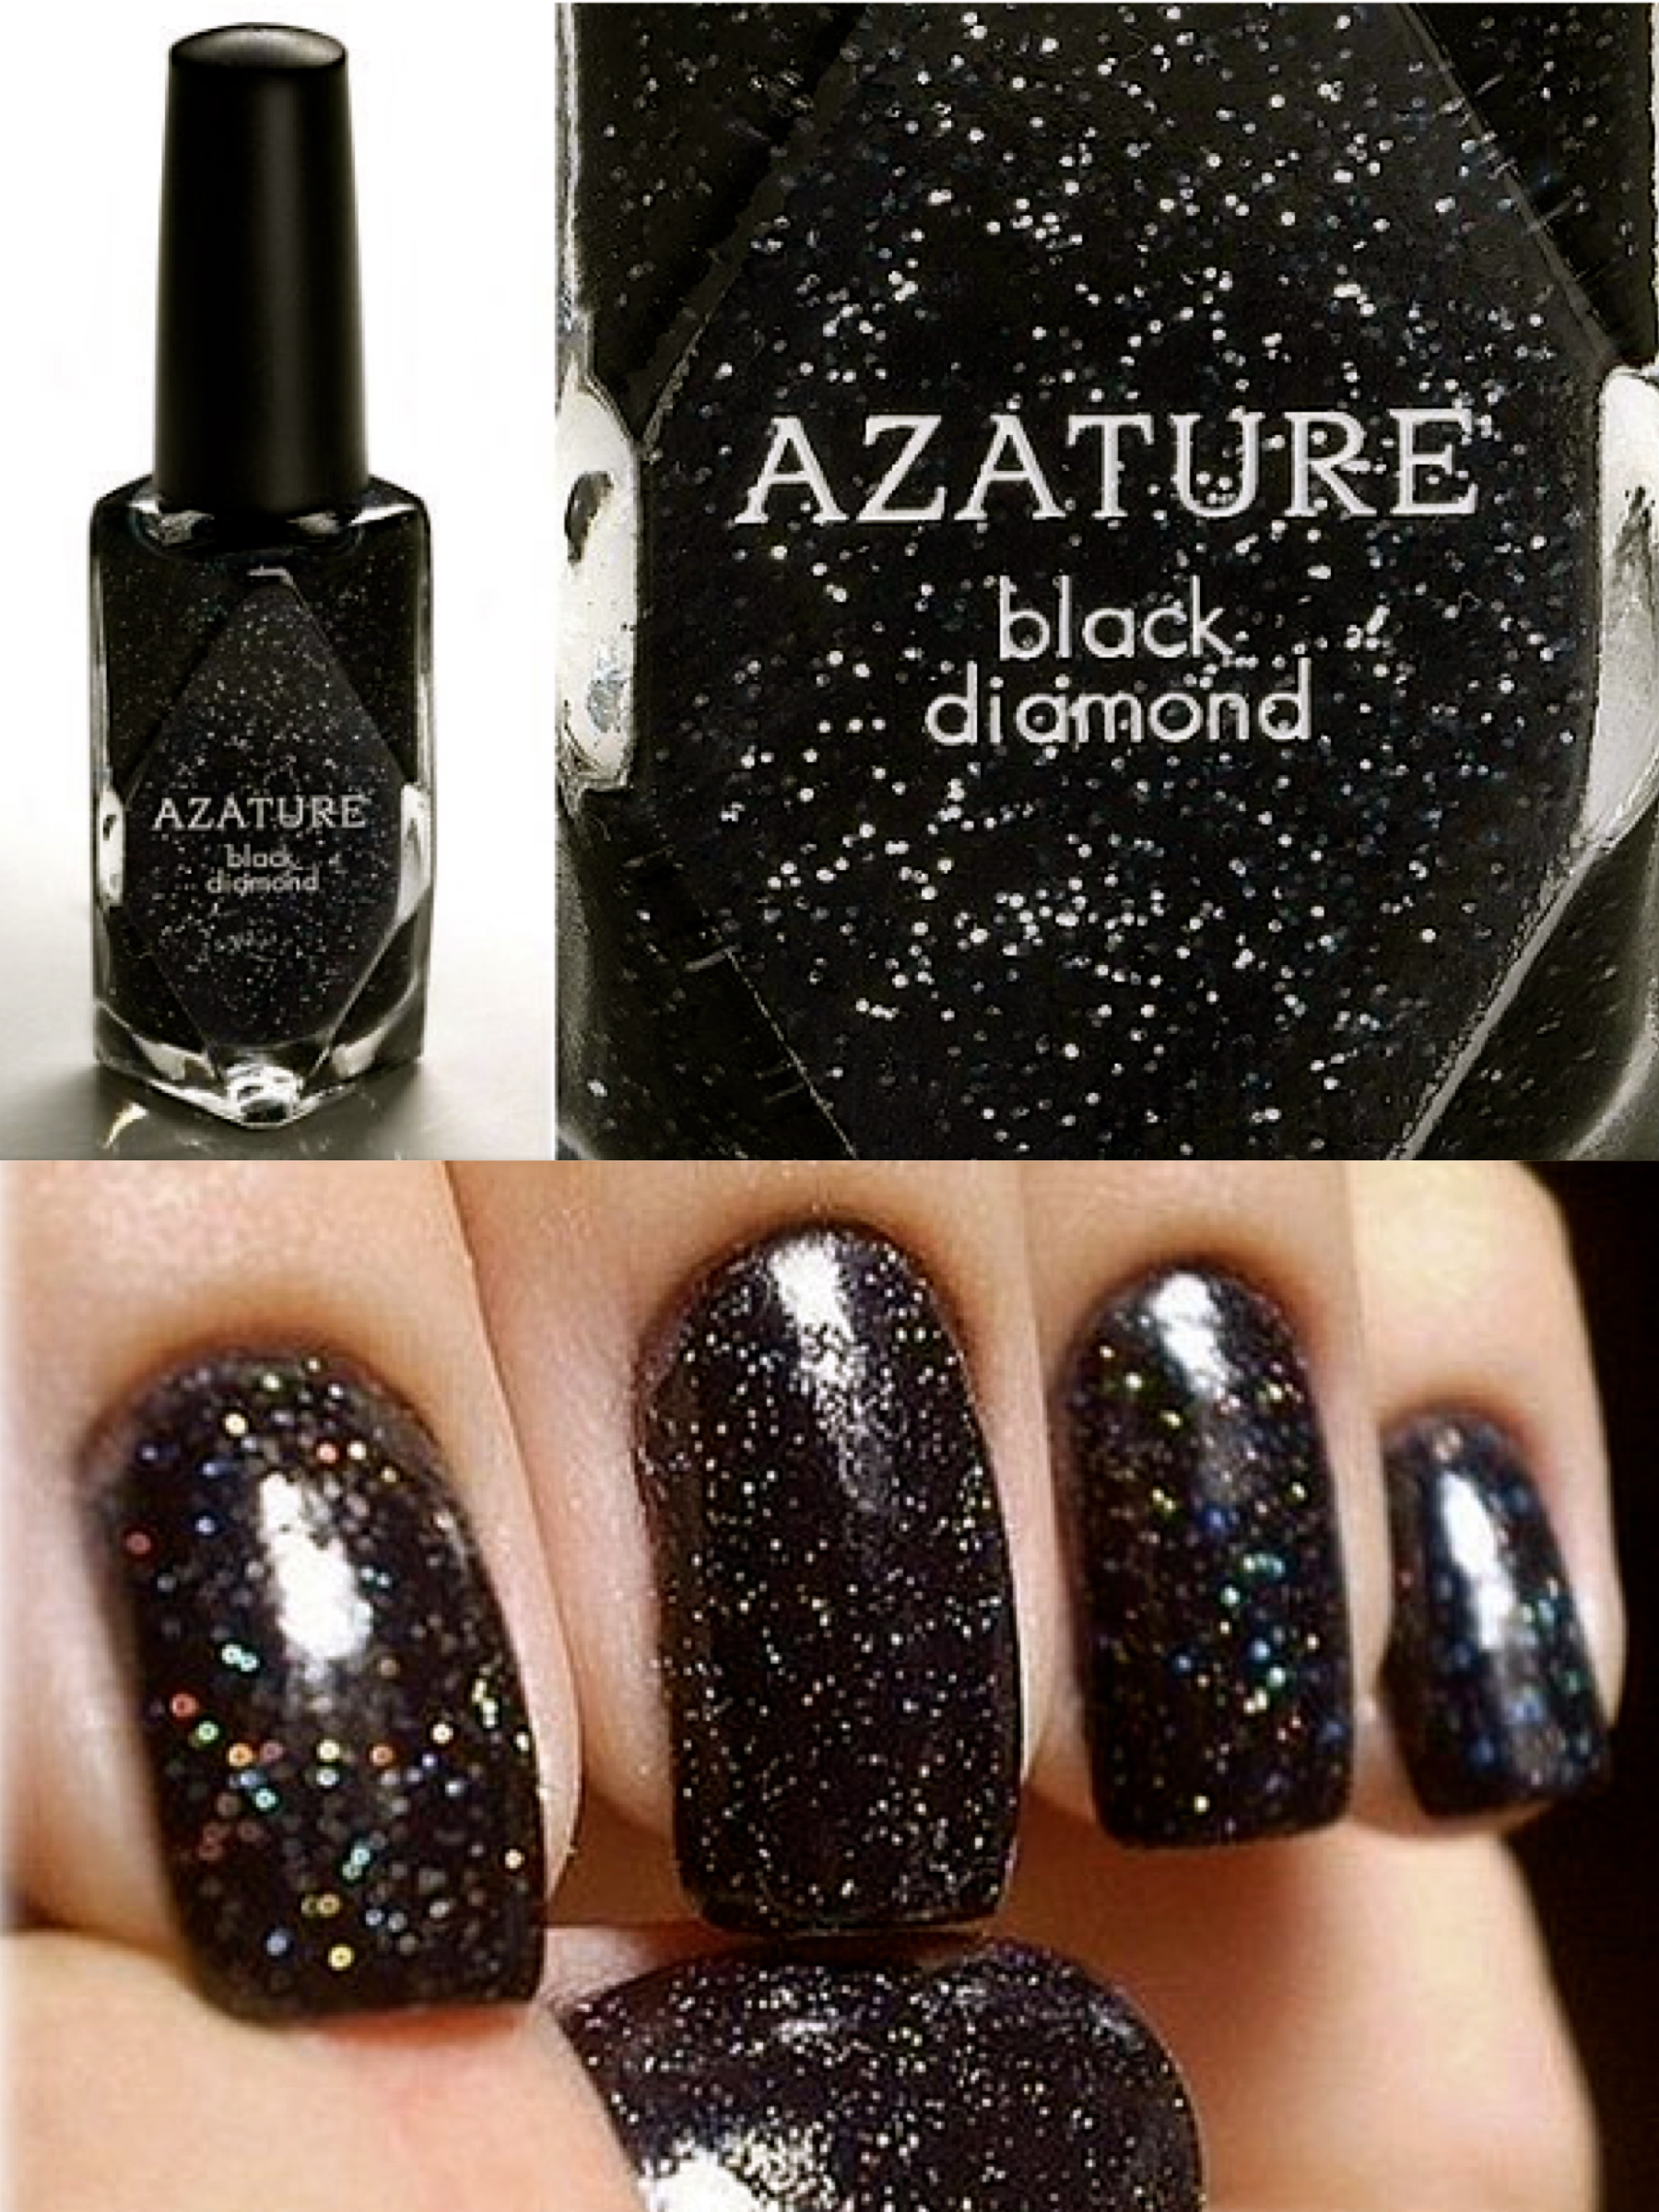 Black Diamonds are a nails best friend??!!